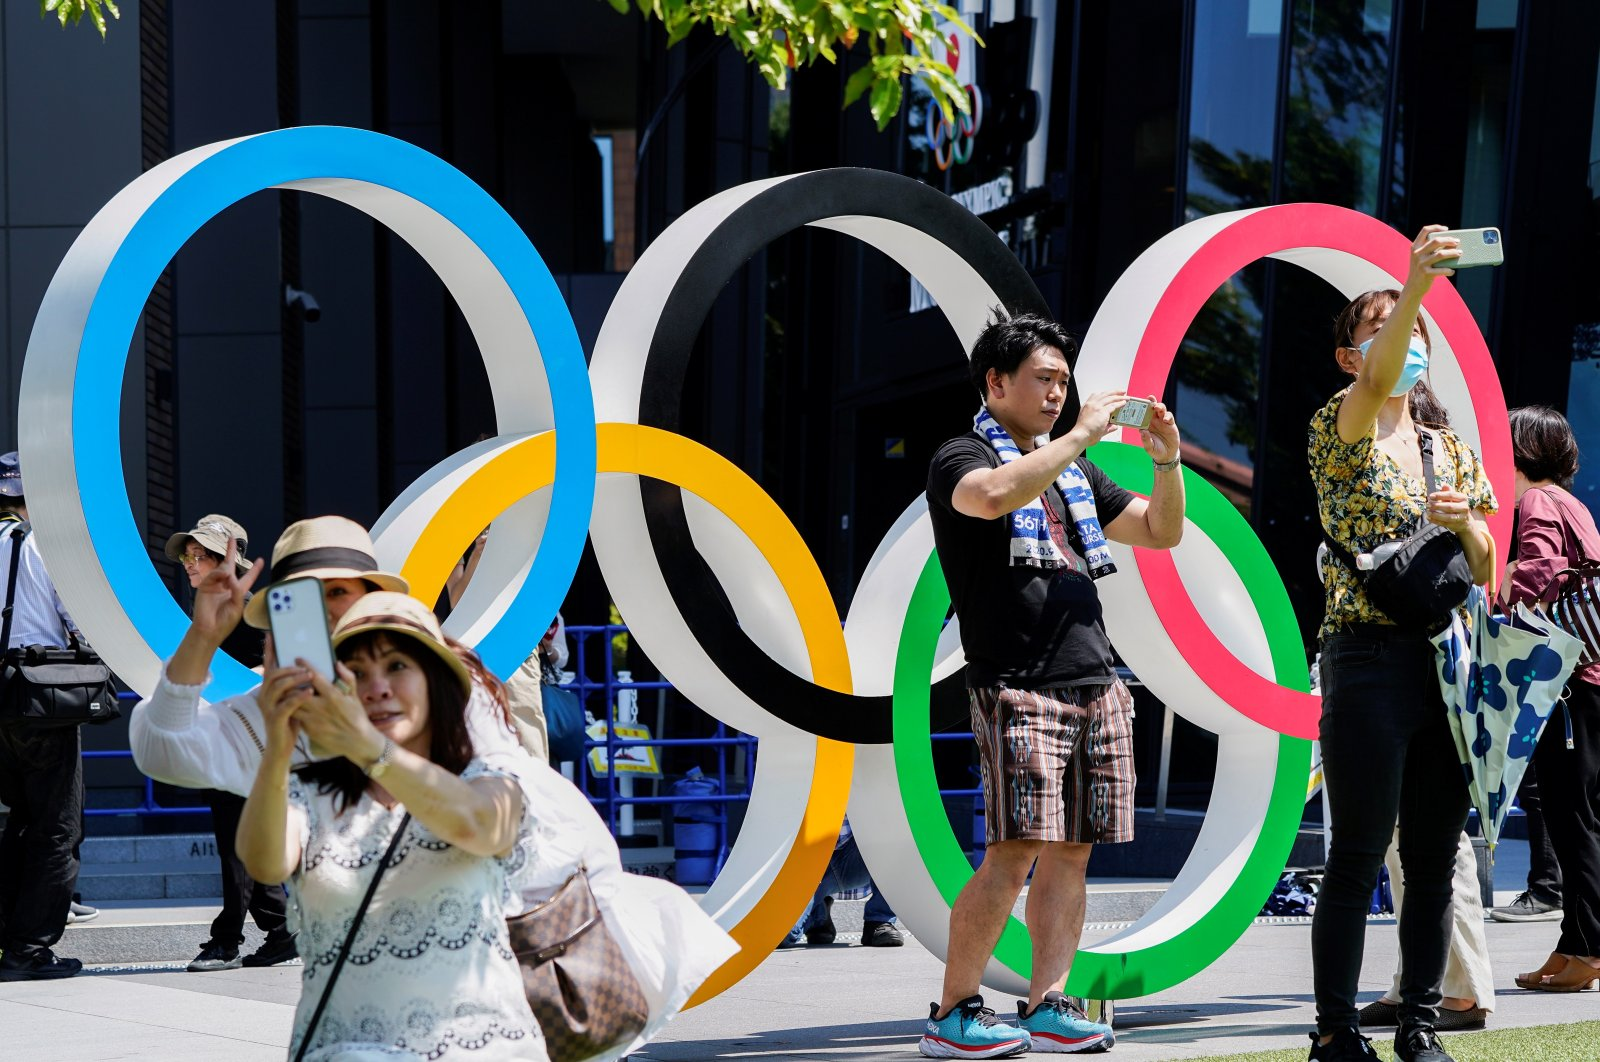 People take selfies in front of an Olympic Rings monument near the National Stadium, the main venue of the Tokyo 2020 Olympics and Paralympics in Tokyo, Japan, July 19, 2021. (Reuters Photo)